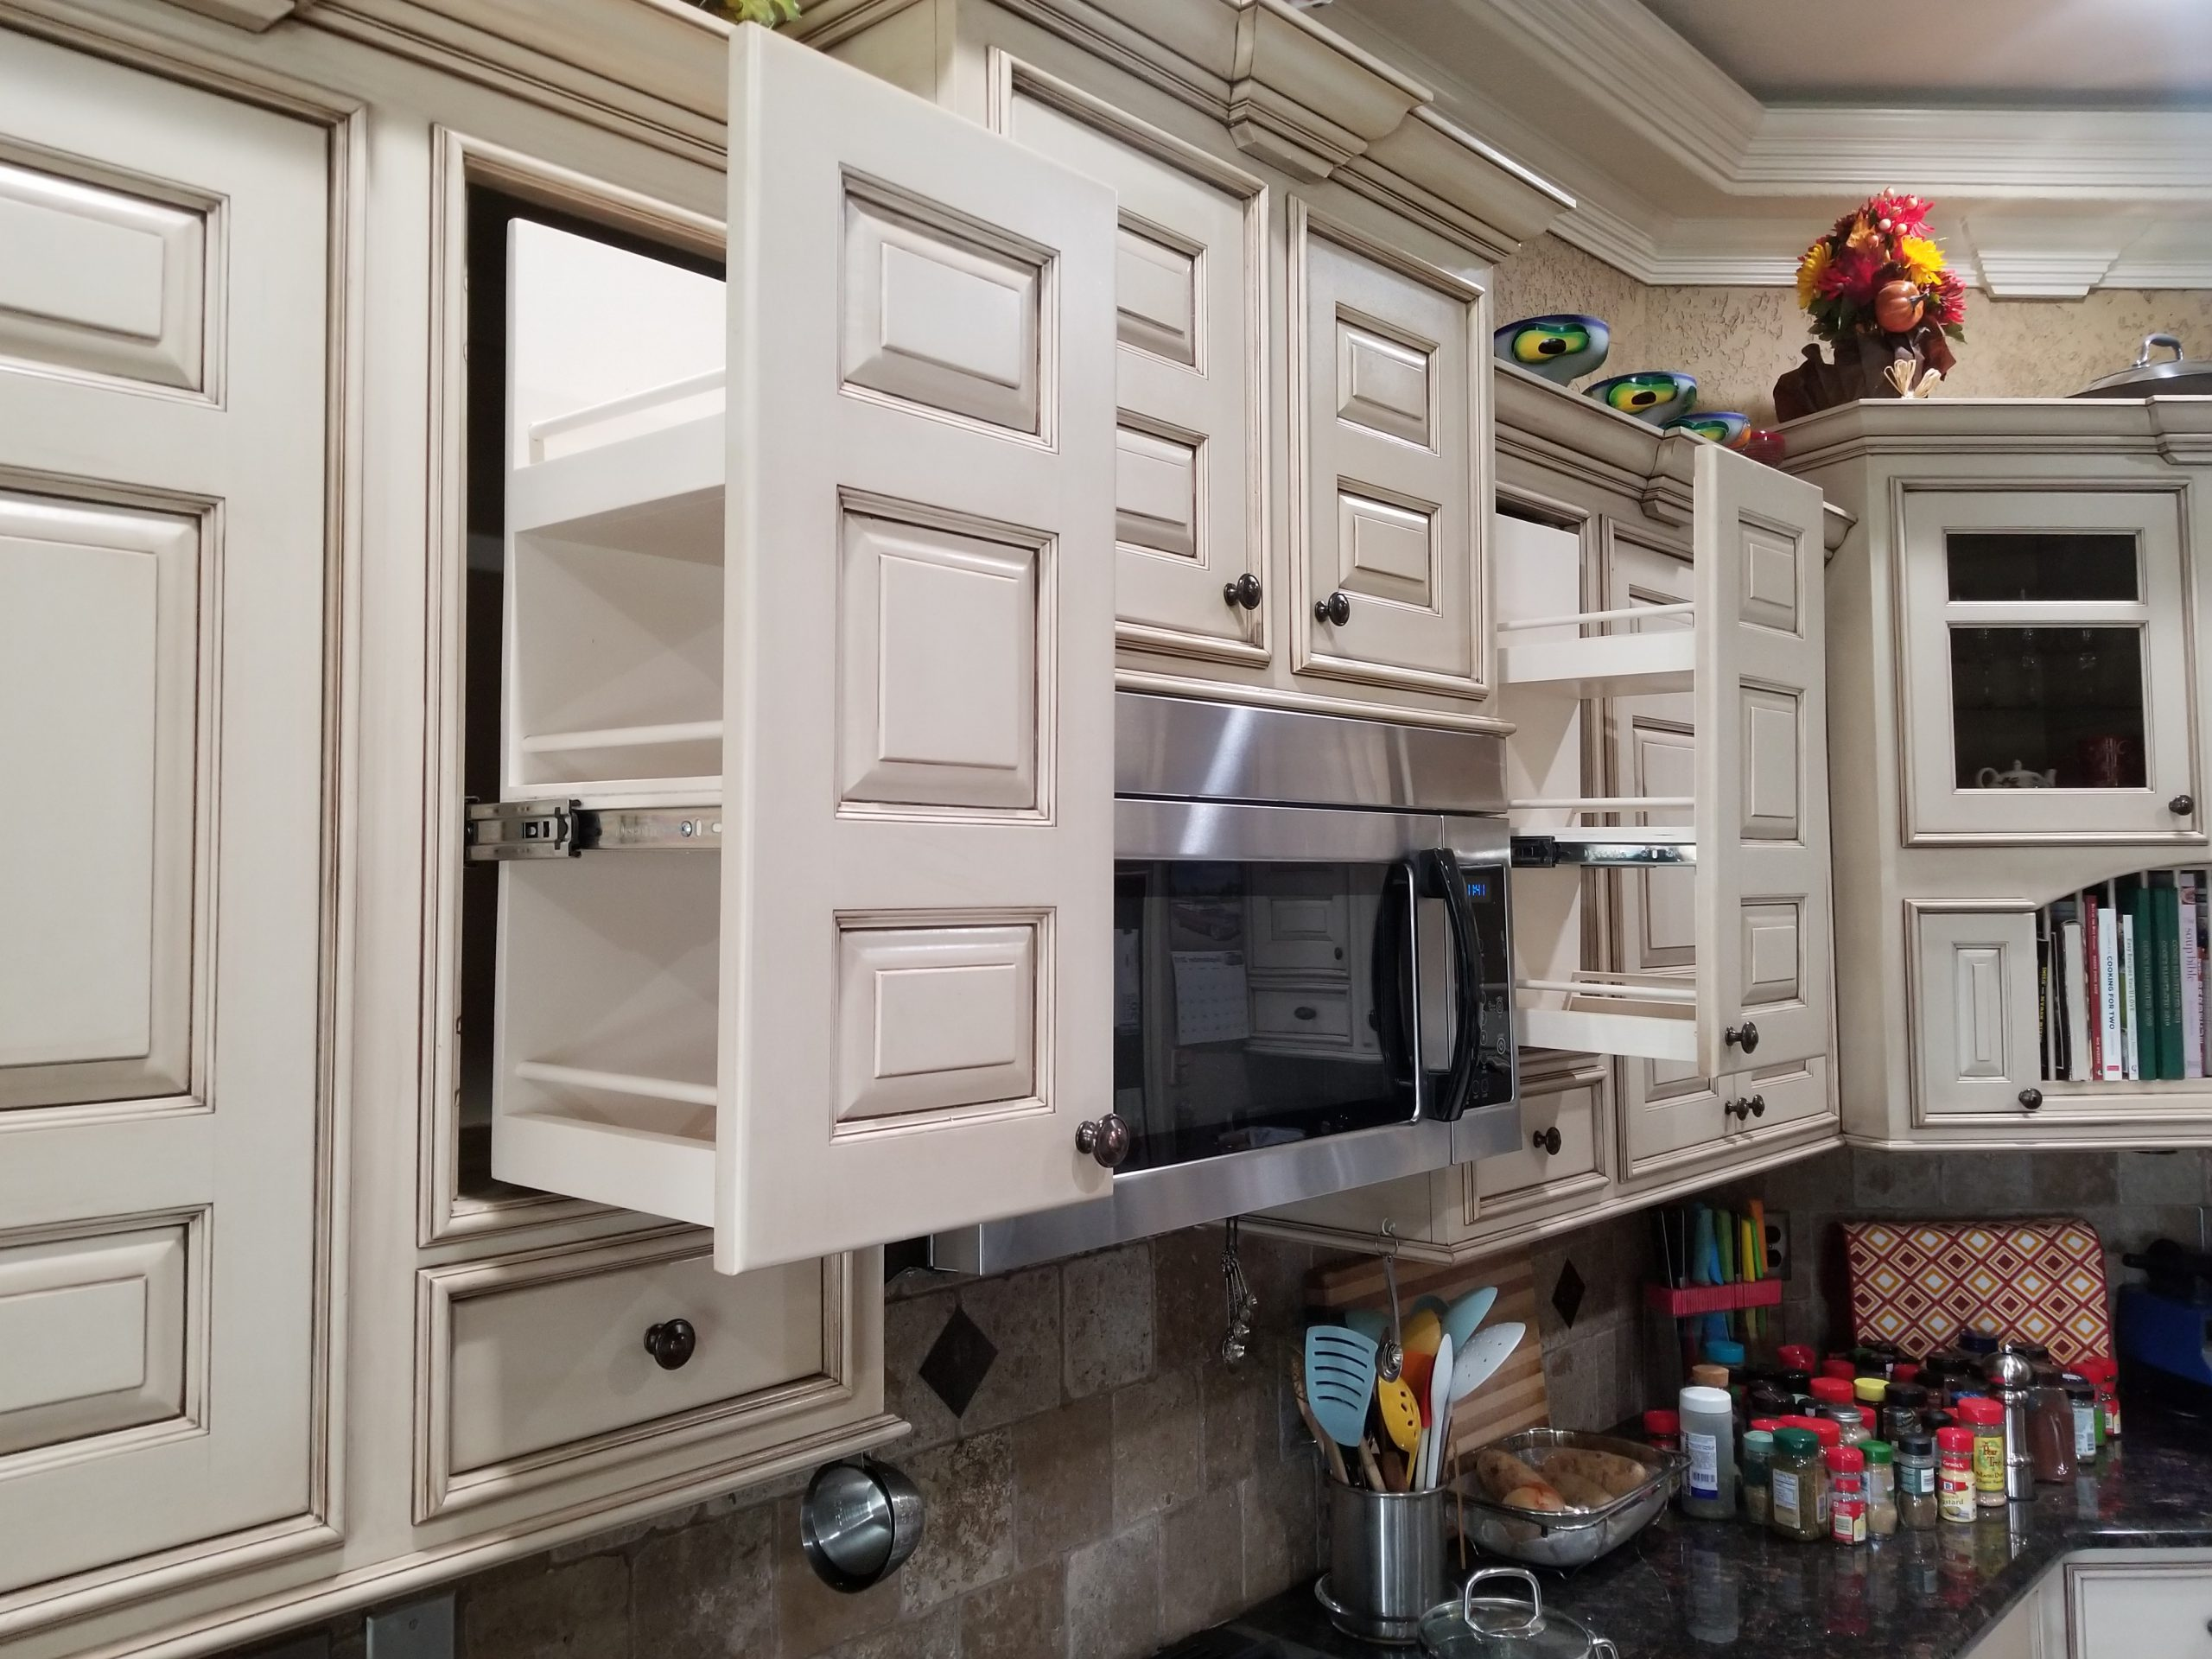 Buy custom traditional kitchen cabinets factory direct in Ocean Gate NJ, Buy custom slab panel kitchen cabinets factory direct in Ocean Gate NJ, Buy custom flat panel kitchen cabinets factory direct in Ocean Gate NJ